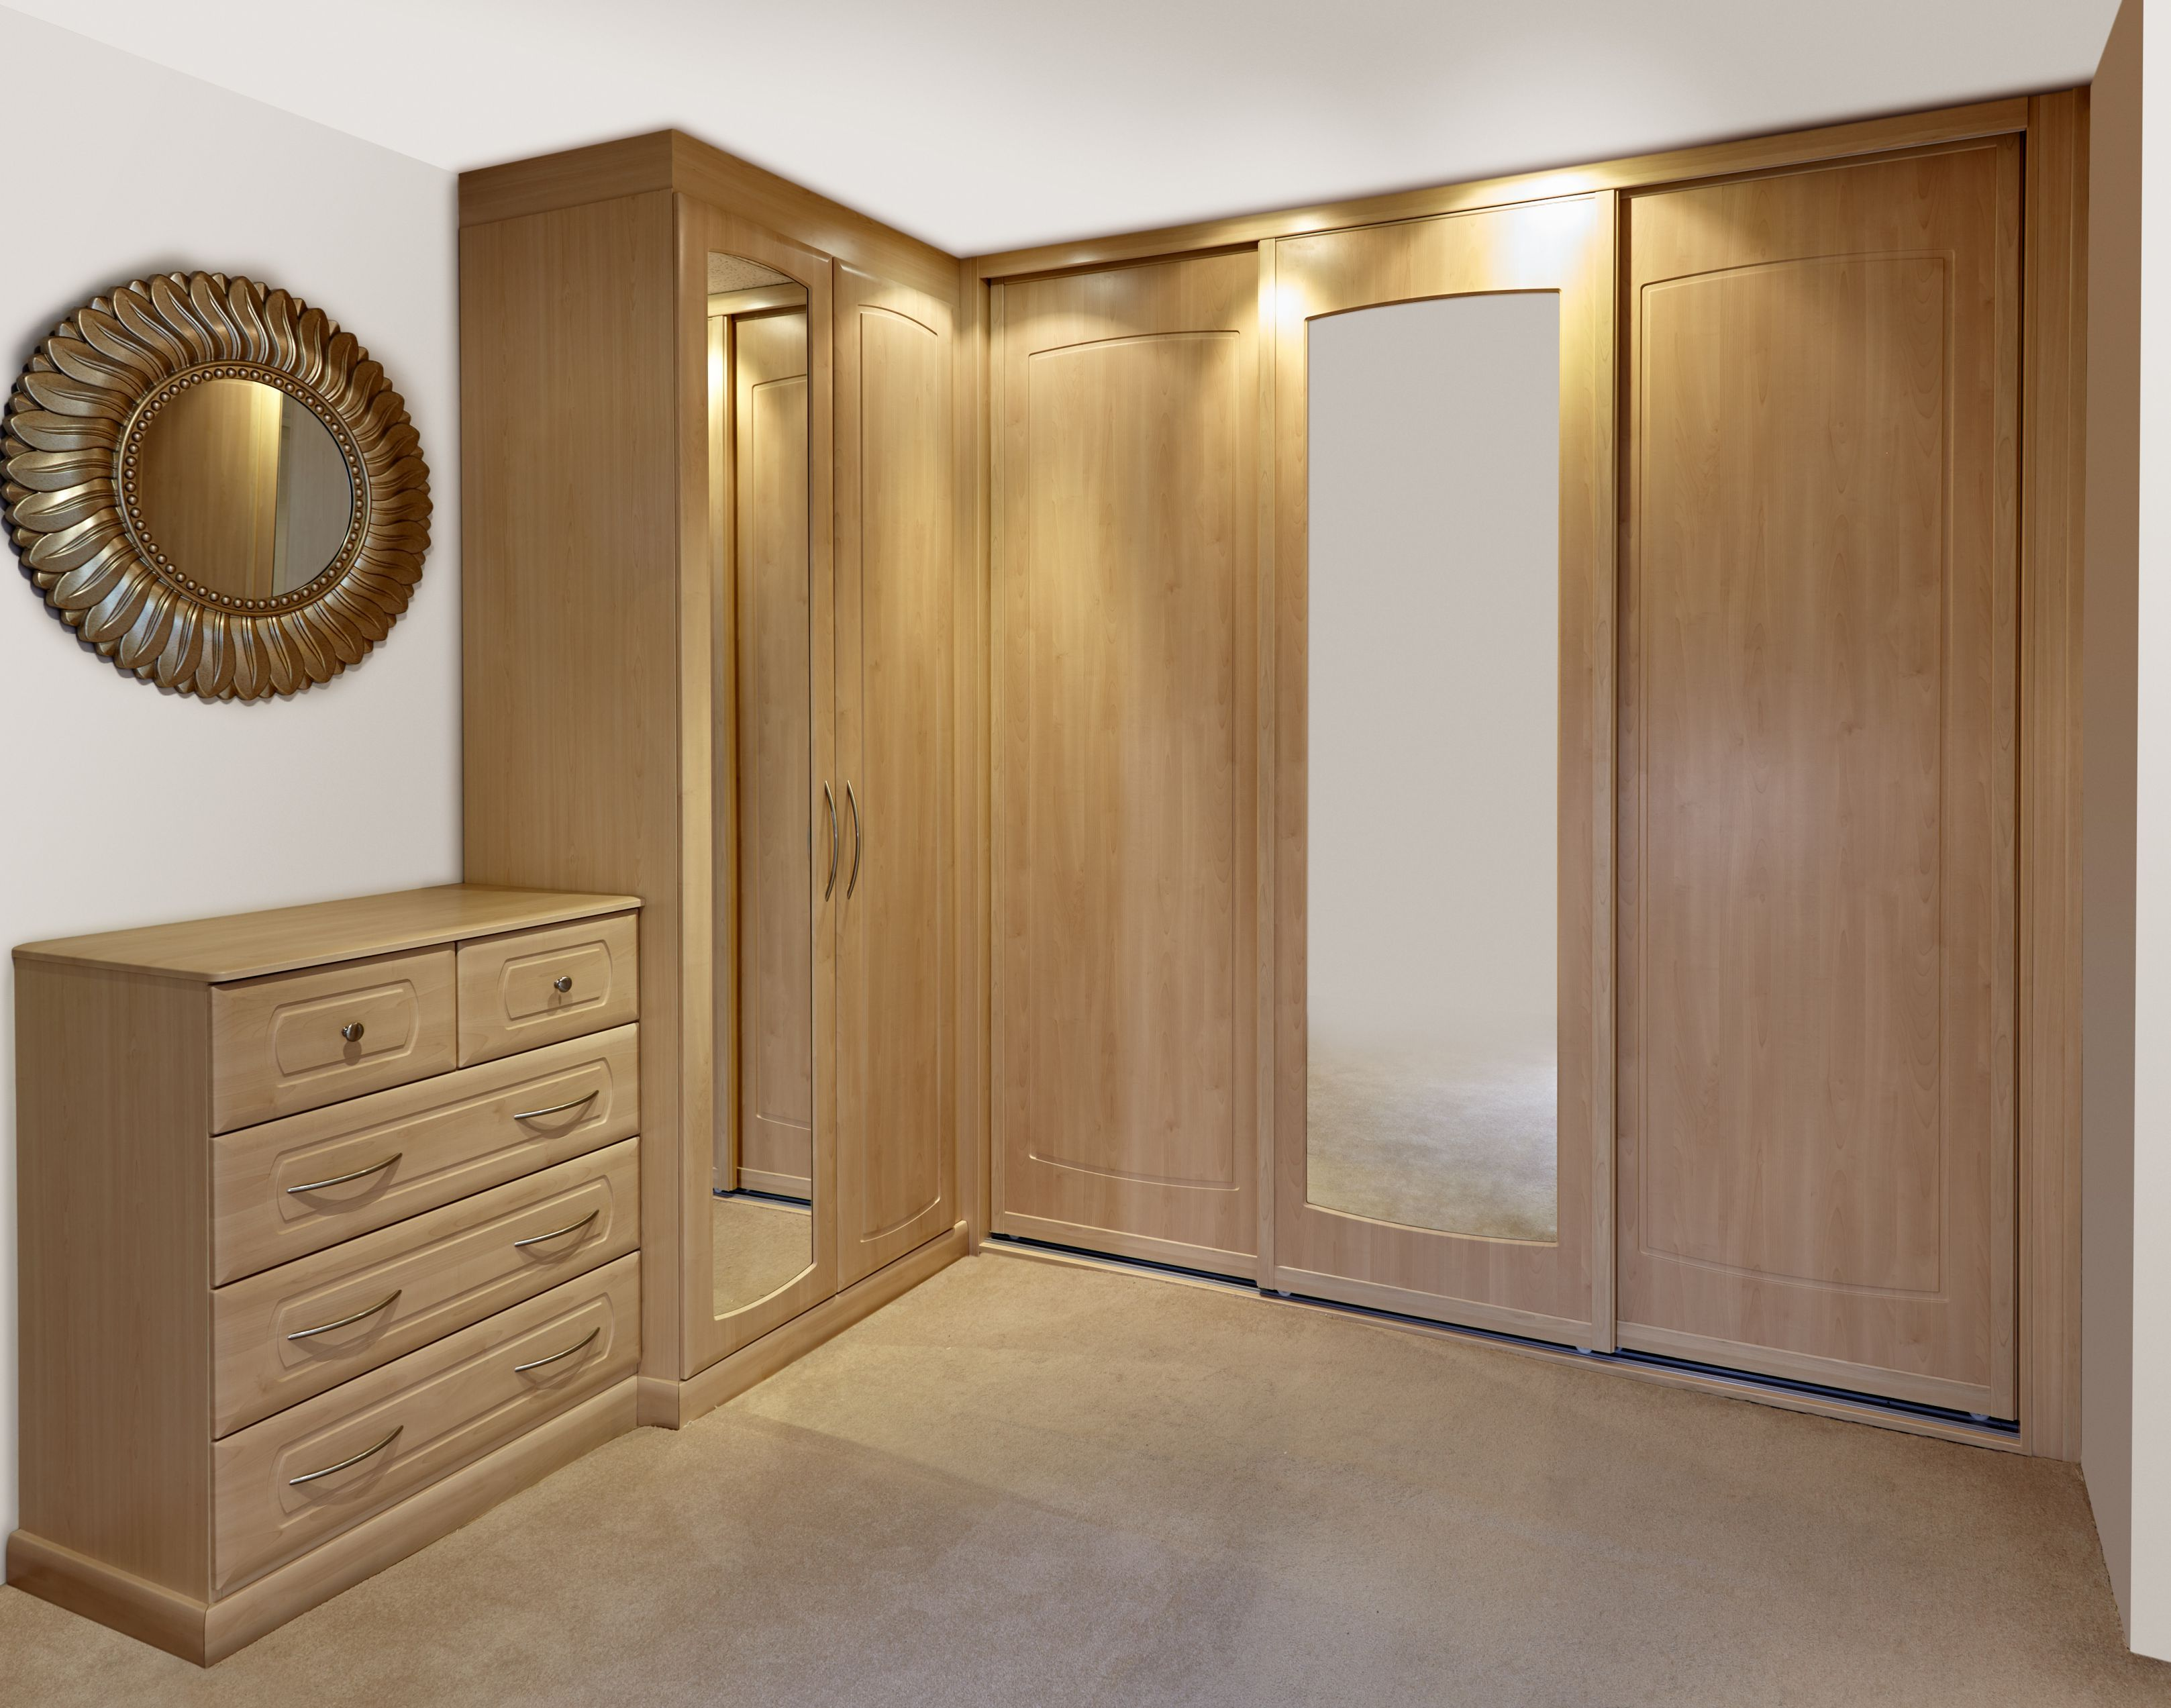 Built In Wardrobe Designs For Bedroom Amazing Fitted Bedroom Furniture Ltd Built Wardrobe Ideas Small Bespoke Inspiration Design